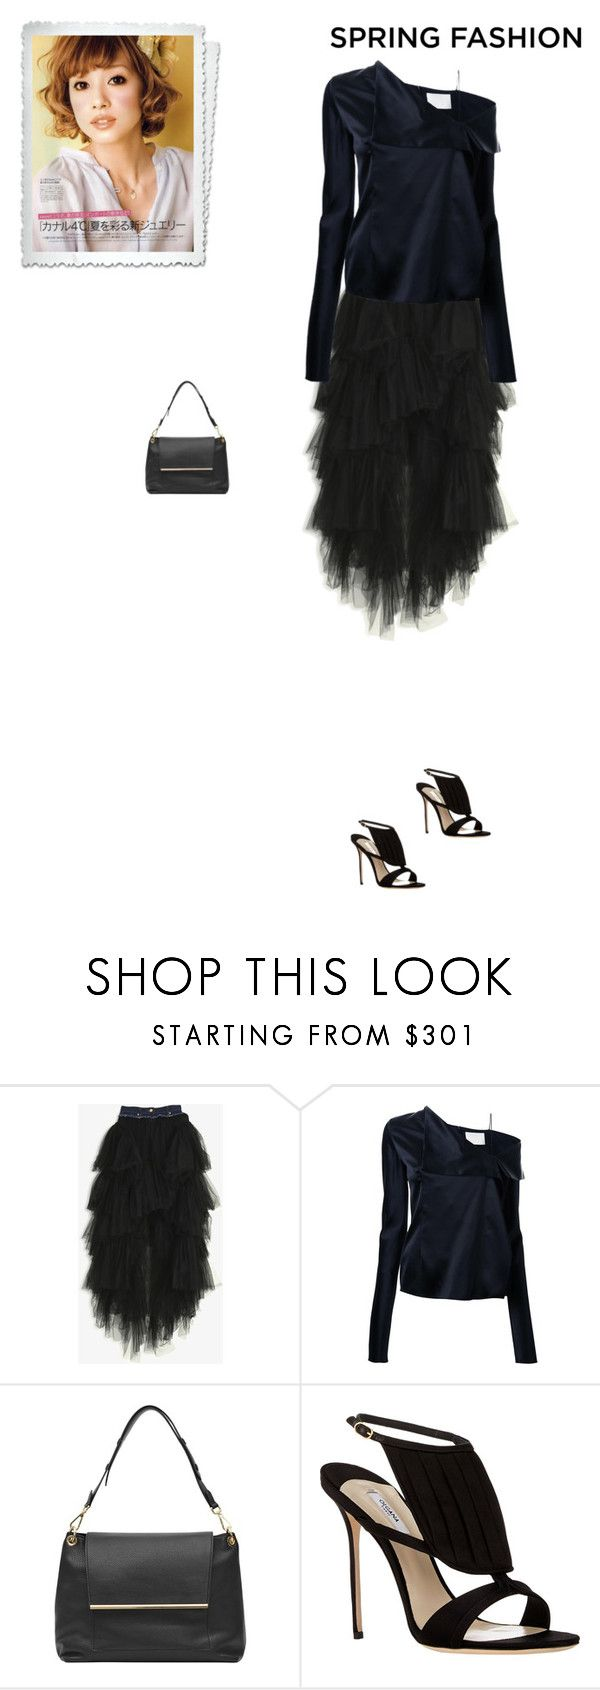 """""""Unbenannt #7487"""" by pretty-girl-in-fashion ❤ liked on Polyvore featuring Natasha Zinko, Dion Lee, Reiss, Olgana, springfashion, dionlee, reiss, natashazinko and olgana"""